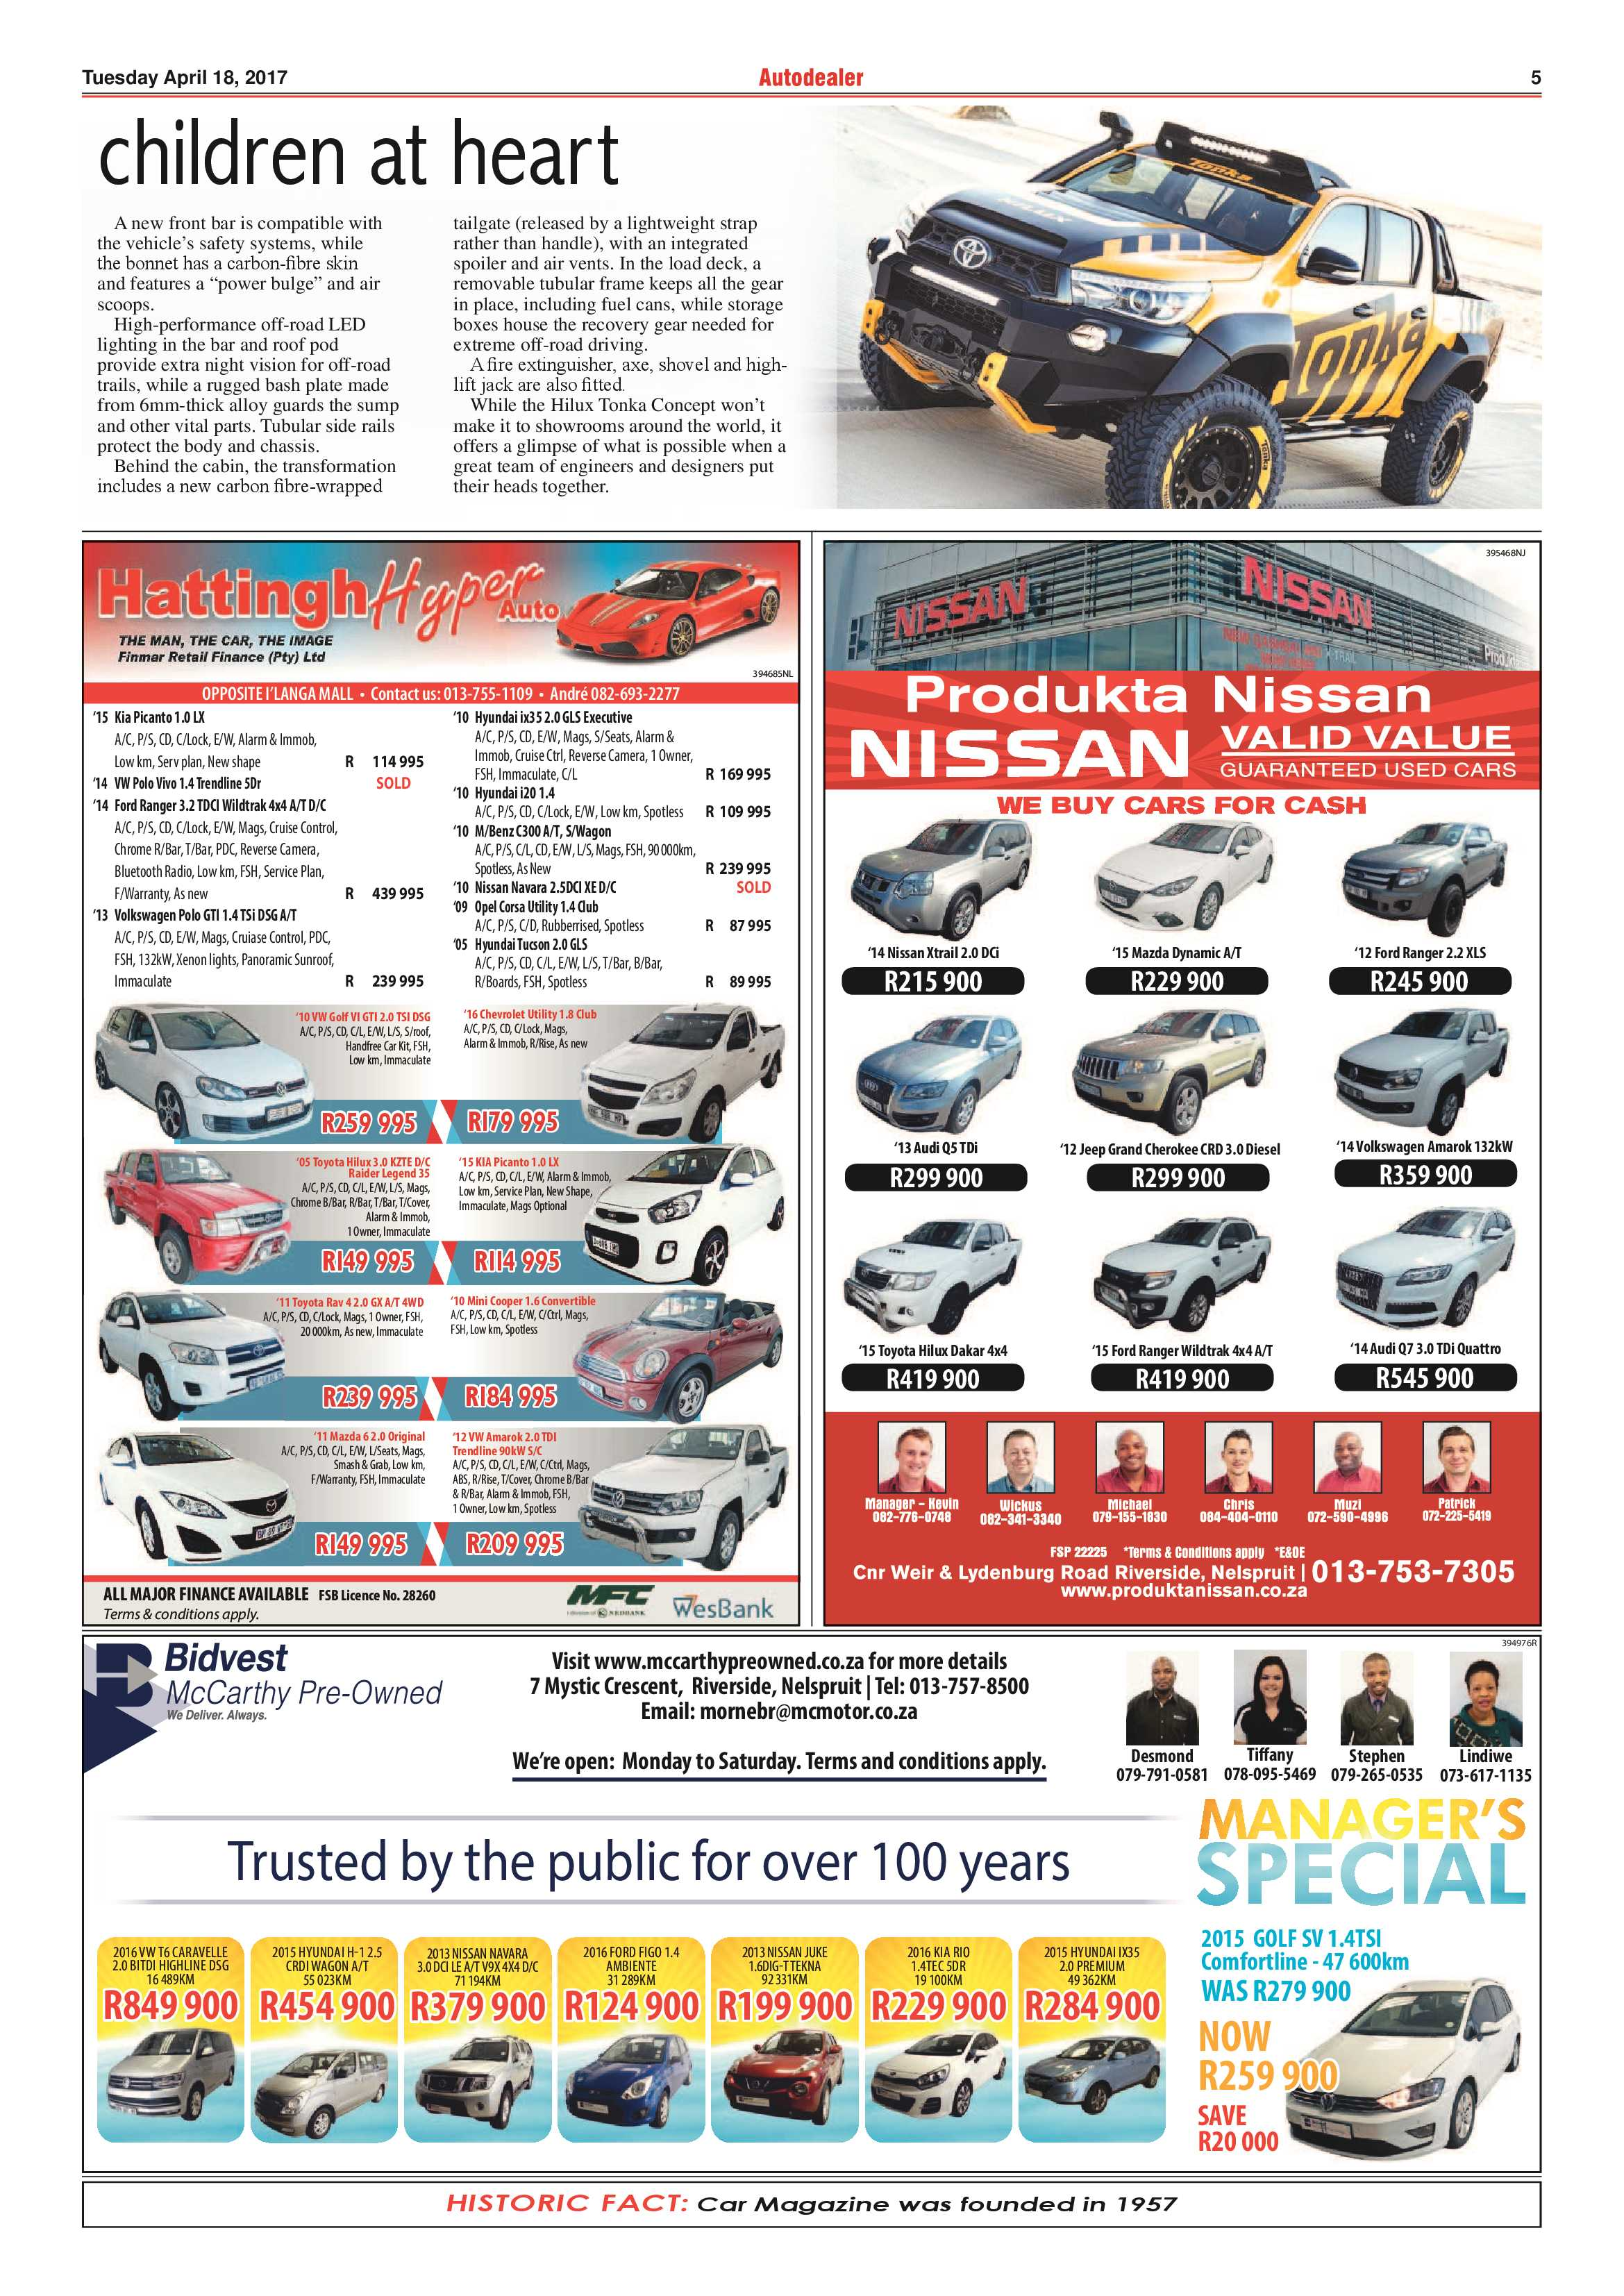 autodealer-18-april-2017-epapers-page-5